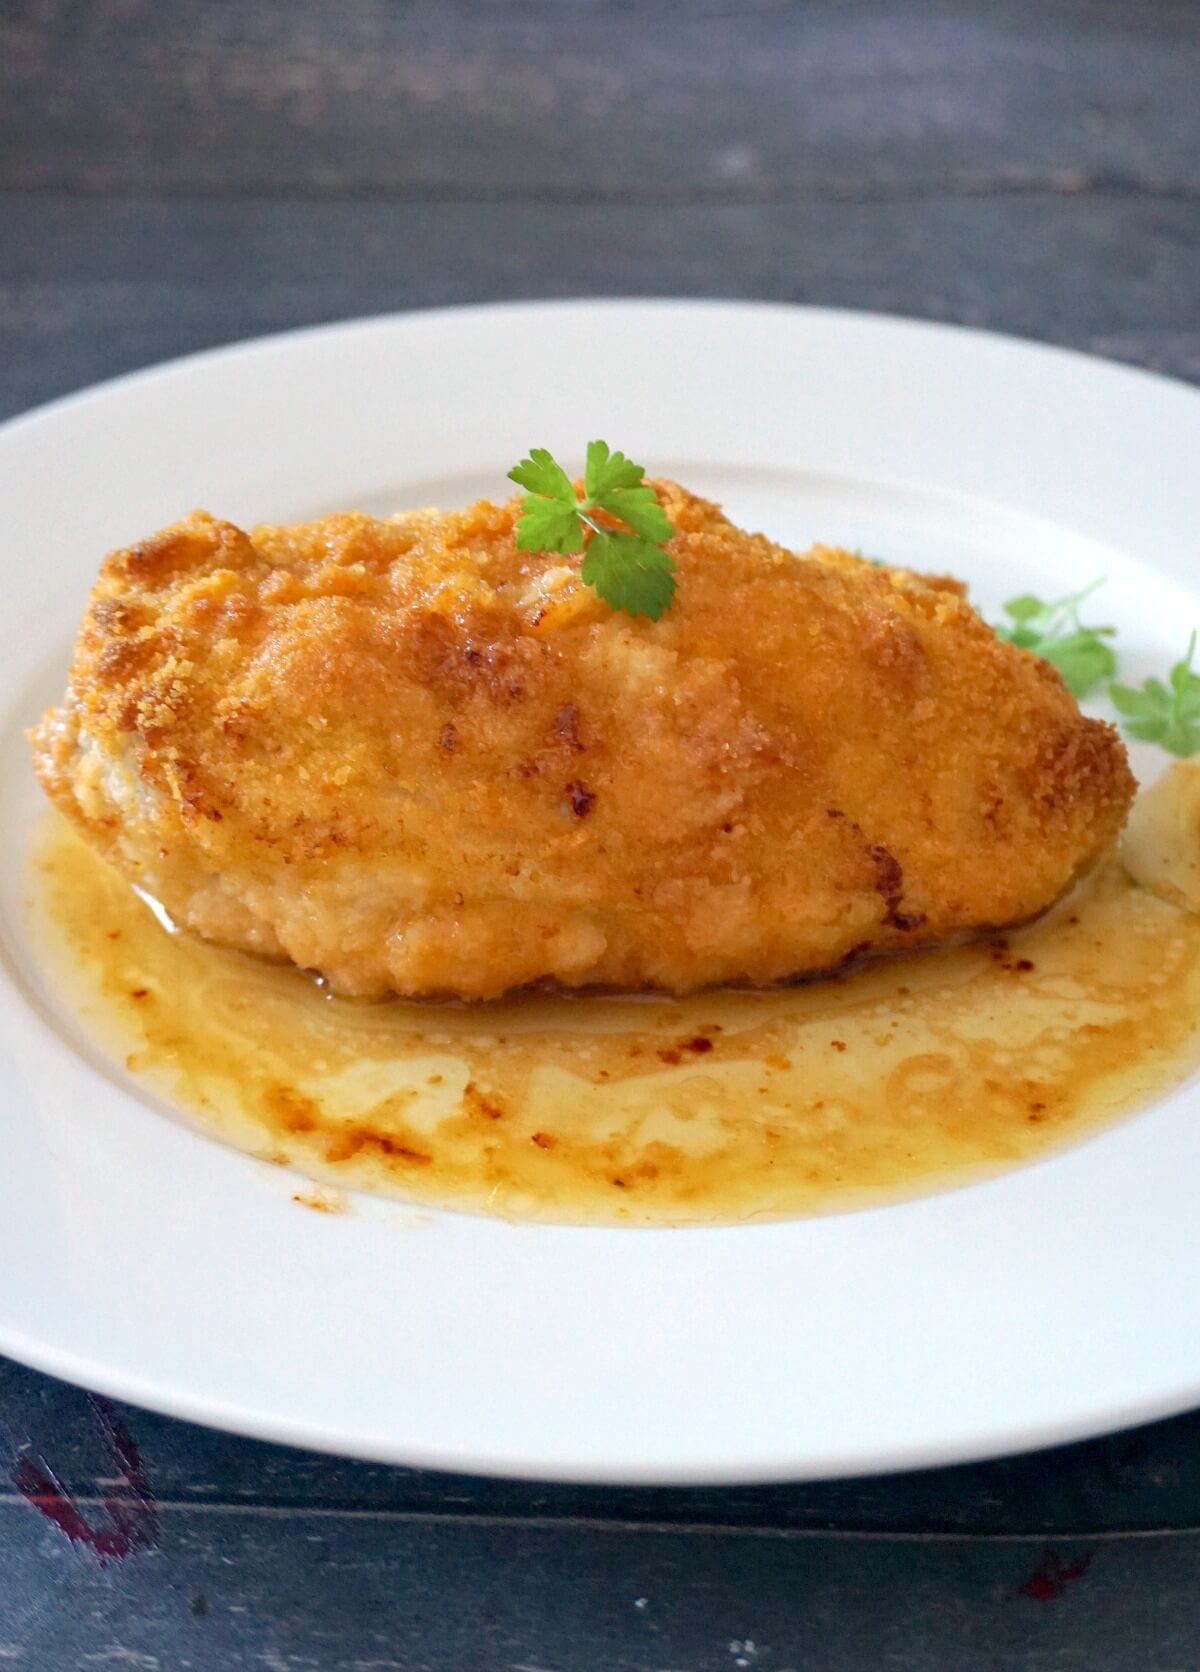 A chicken kiev on a white plate